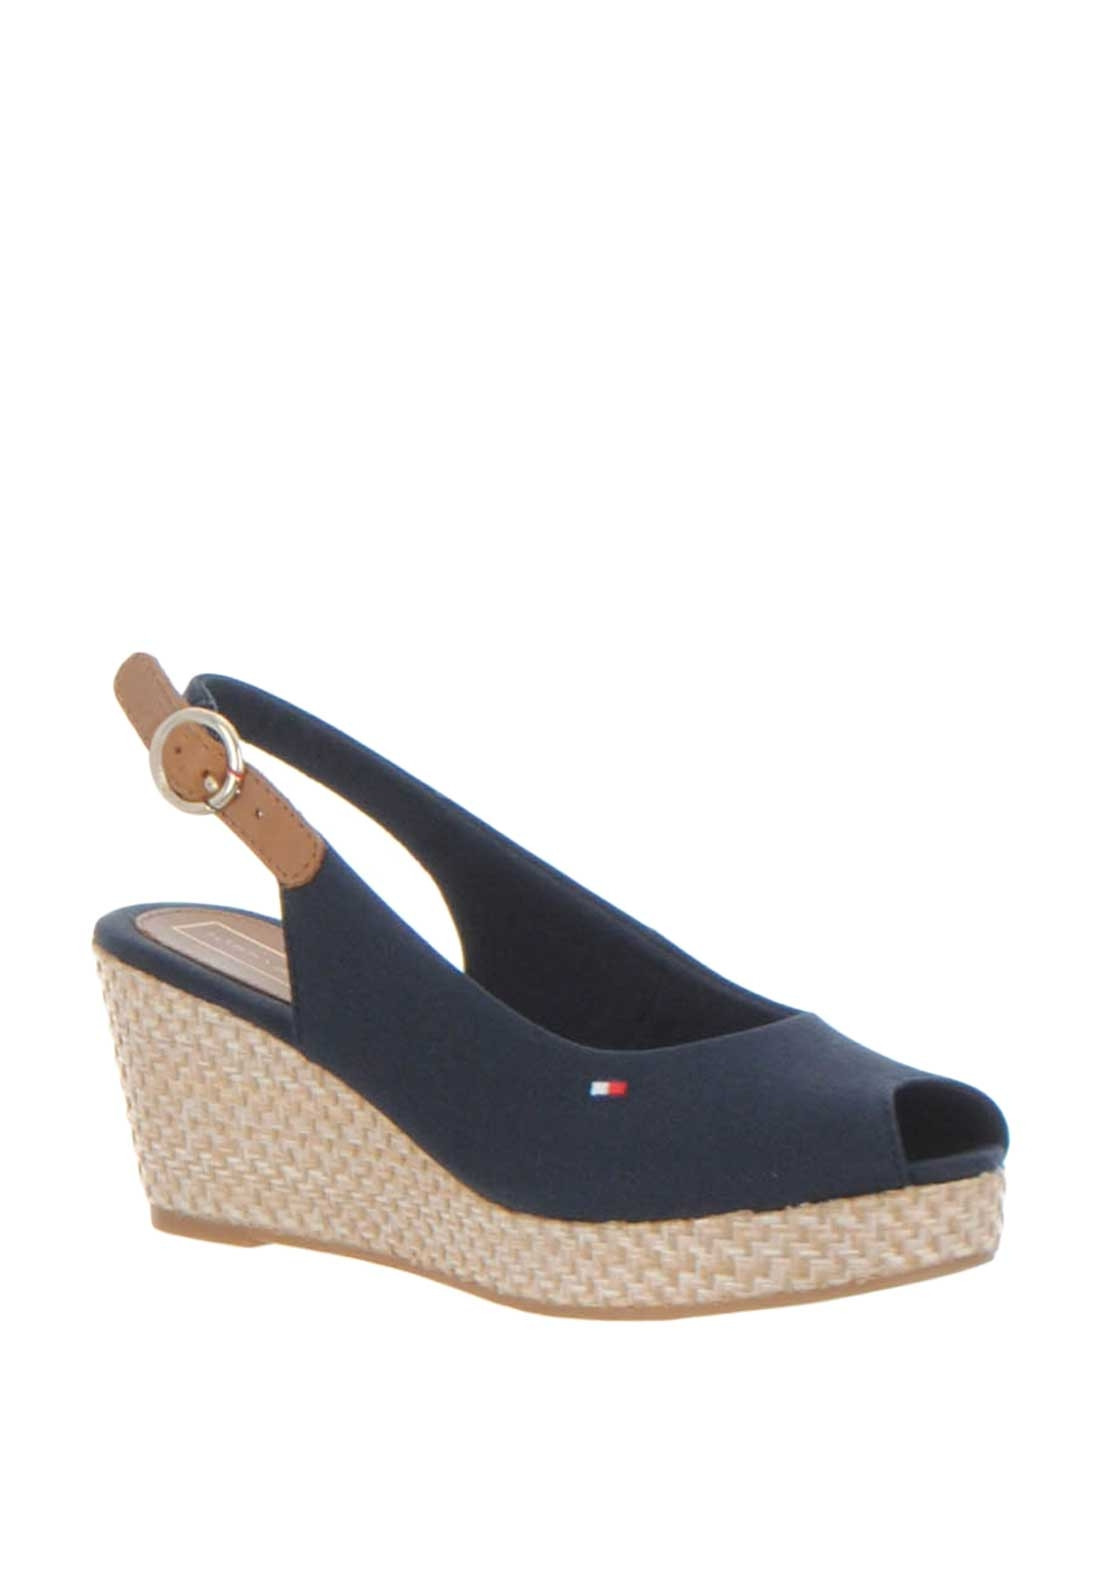 3867988325e Tommy Hilfiger Womens Slingback Wedge Sandals, Navy. Be the first to review  this product